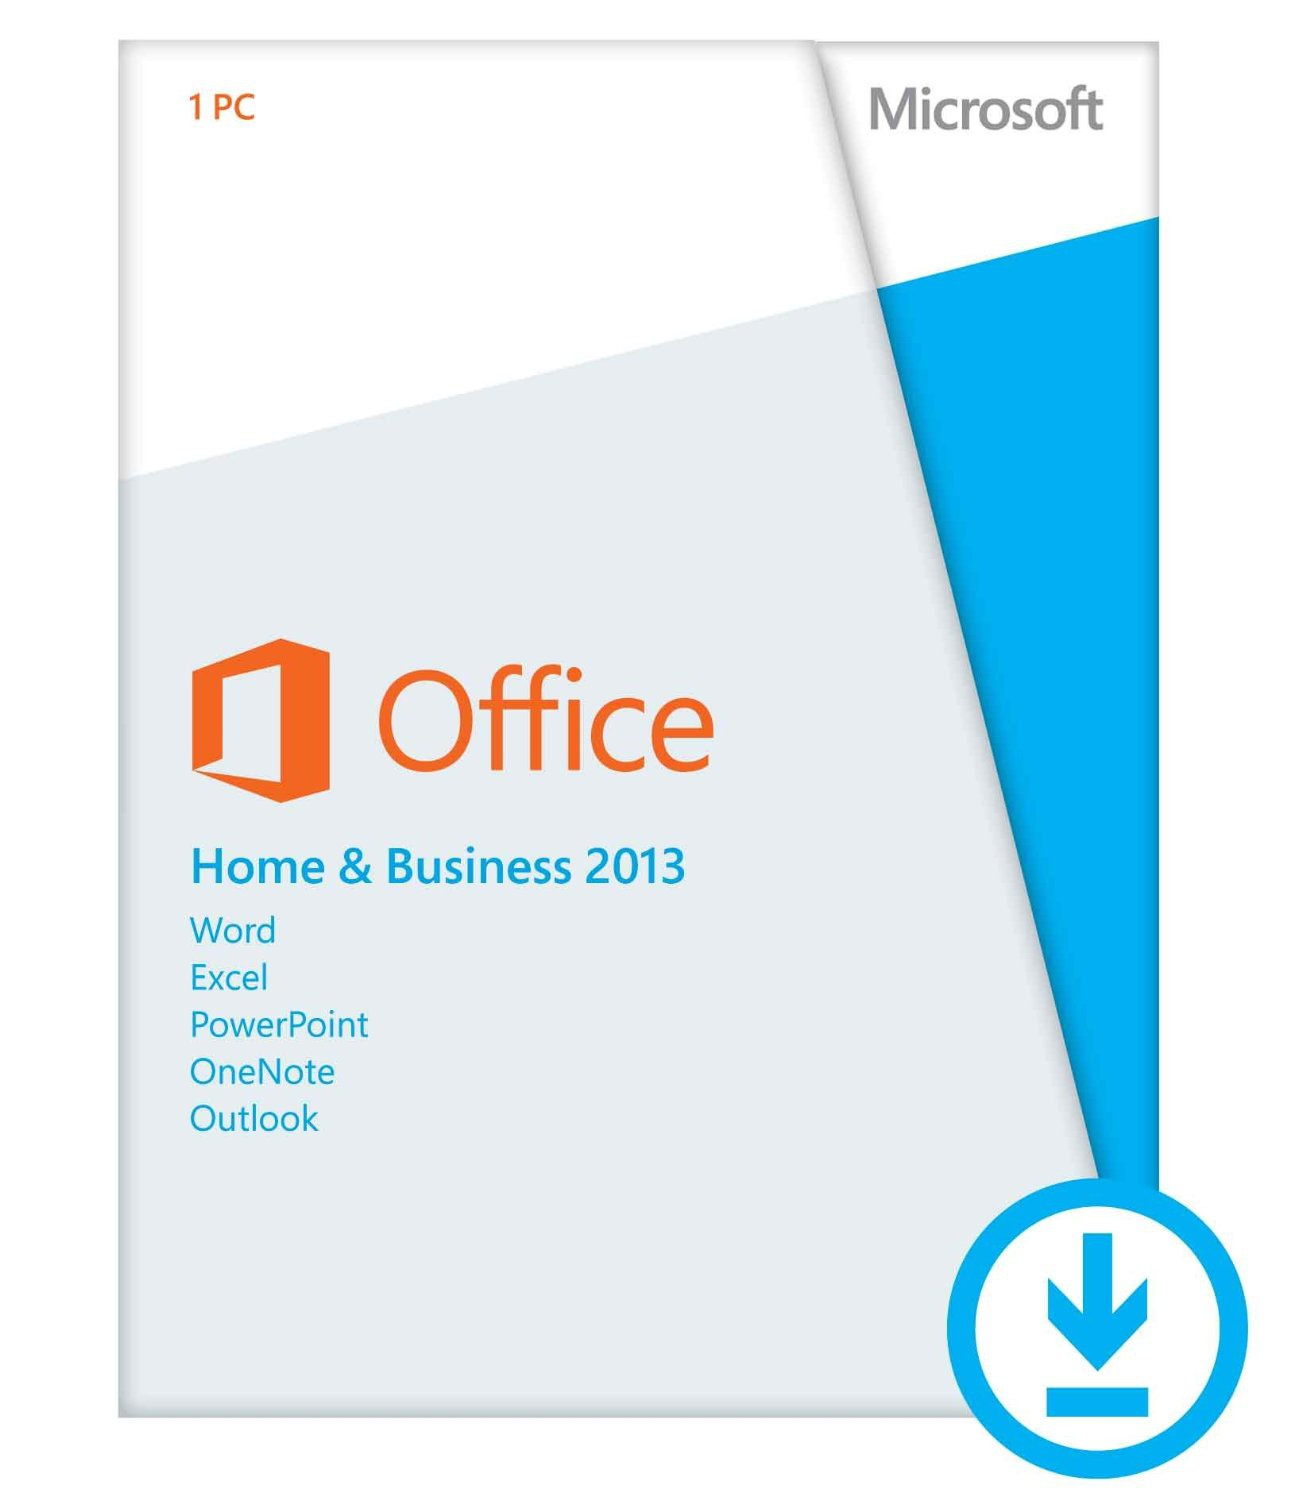 microsoft home office - Yeni.mescale.co